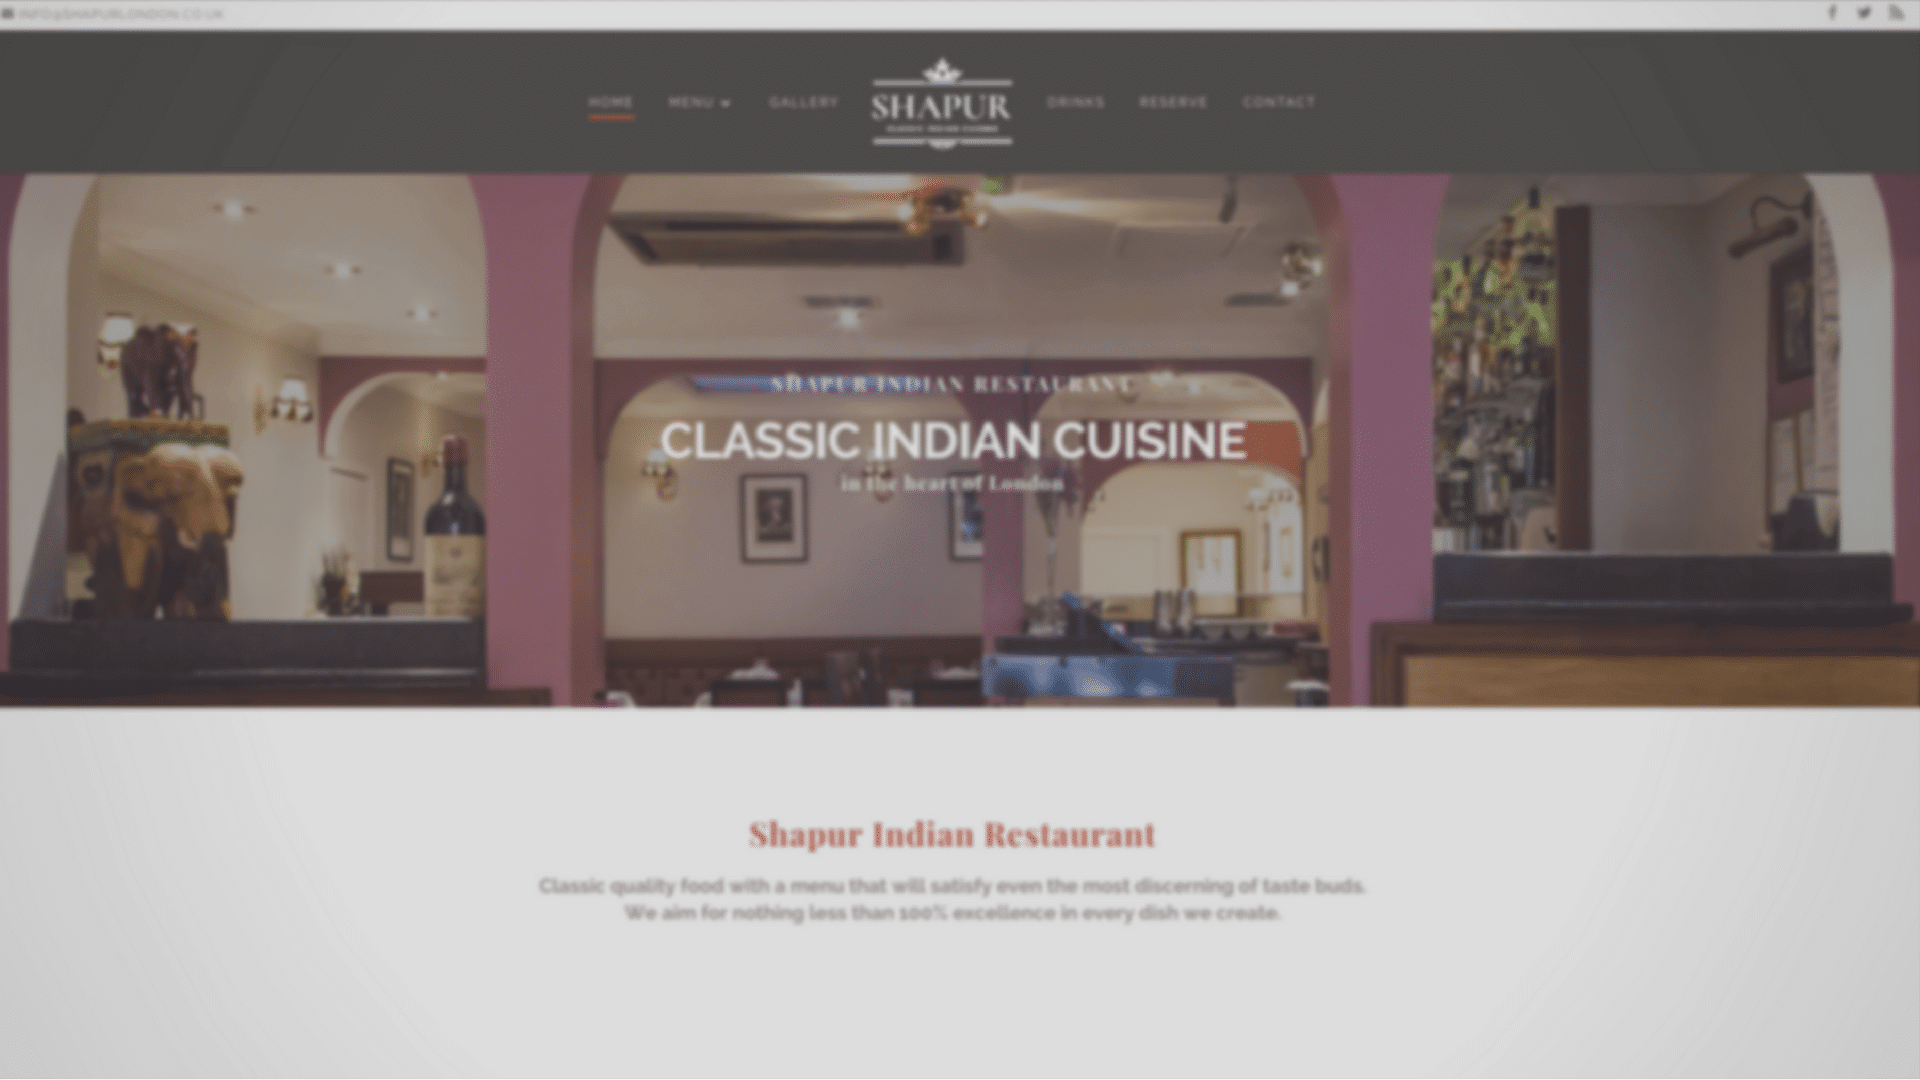 Shapur Indian Restaurant